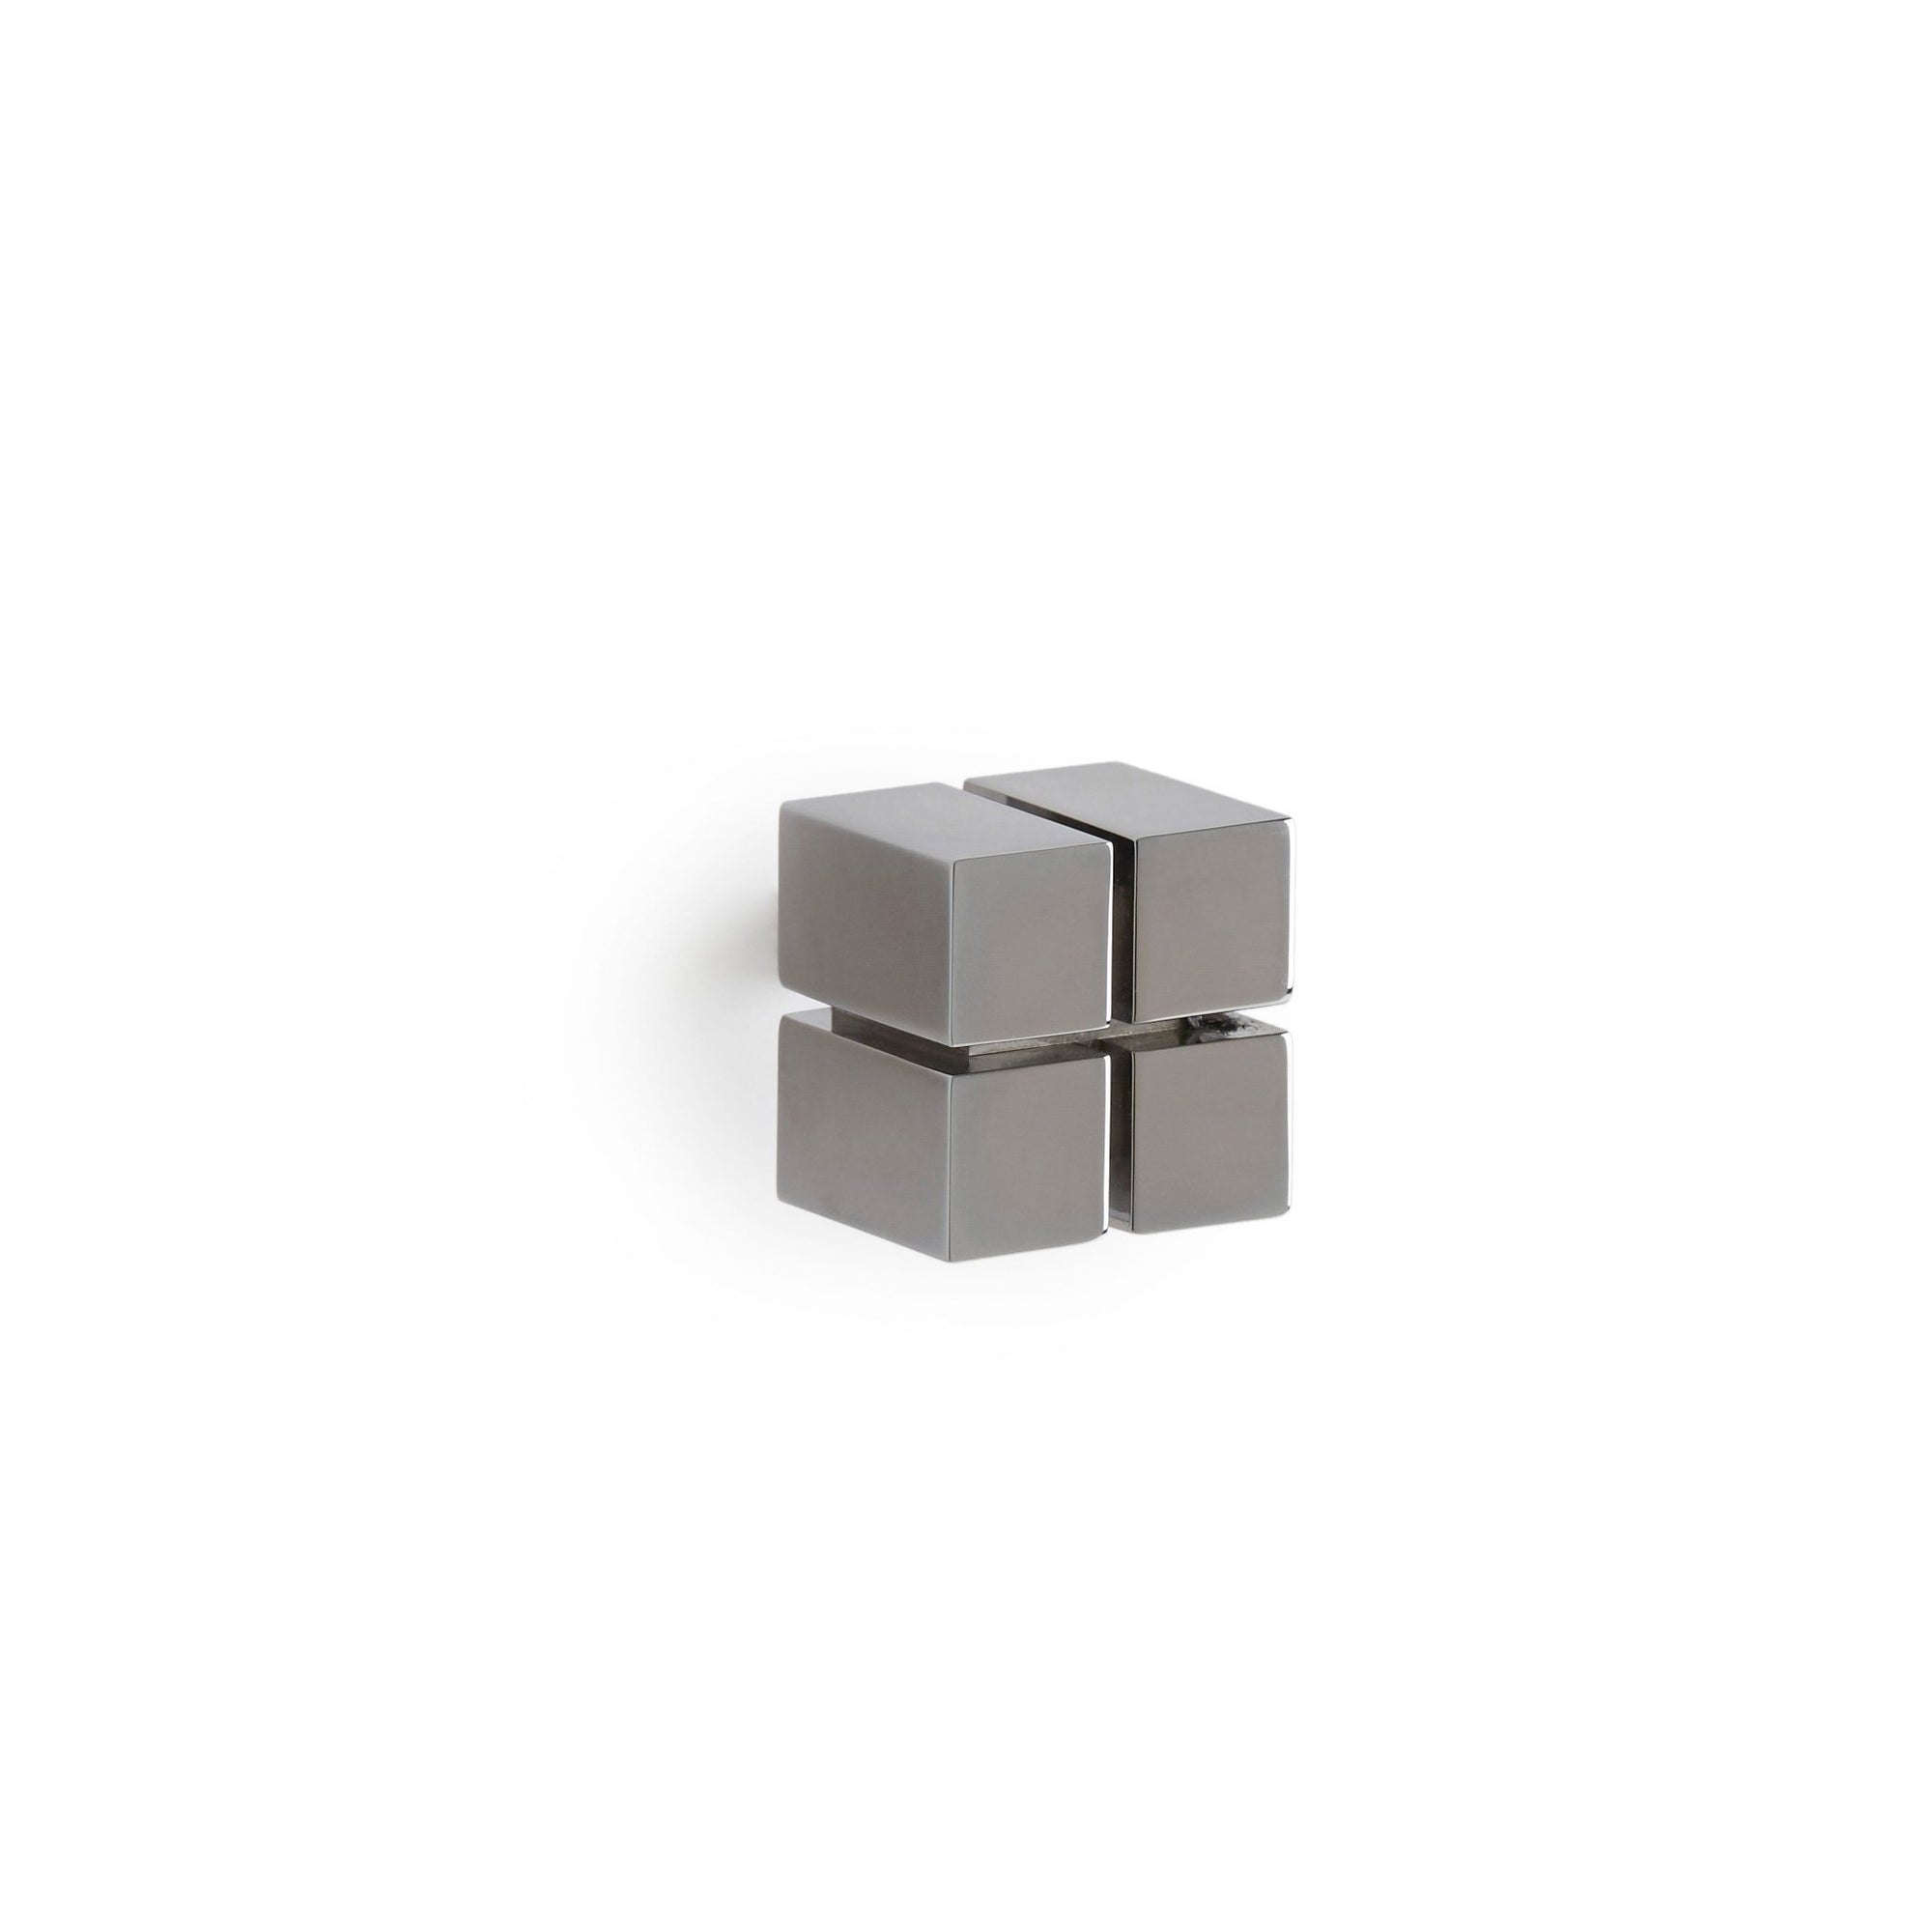 2003A-CP Sherle Wagner International Quad Cabinet & Drawer Knob in Polished Chrome metal finish